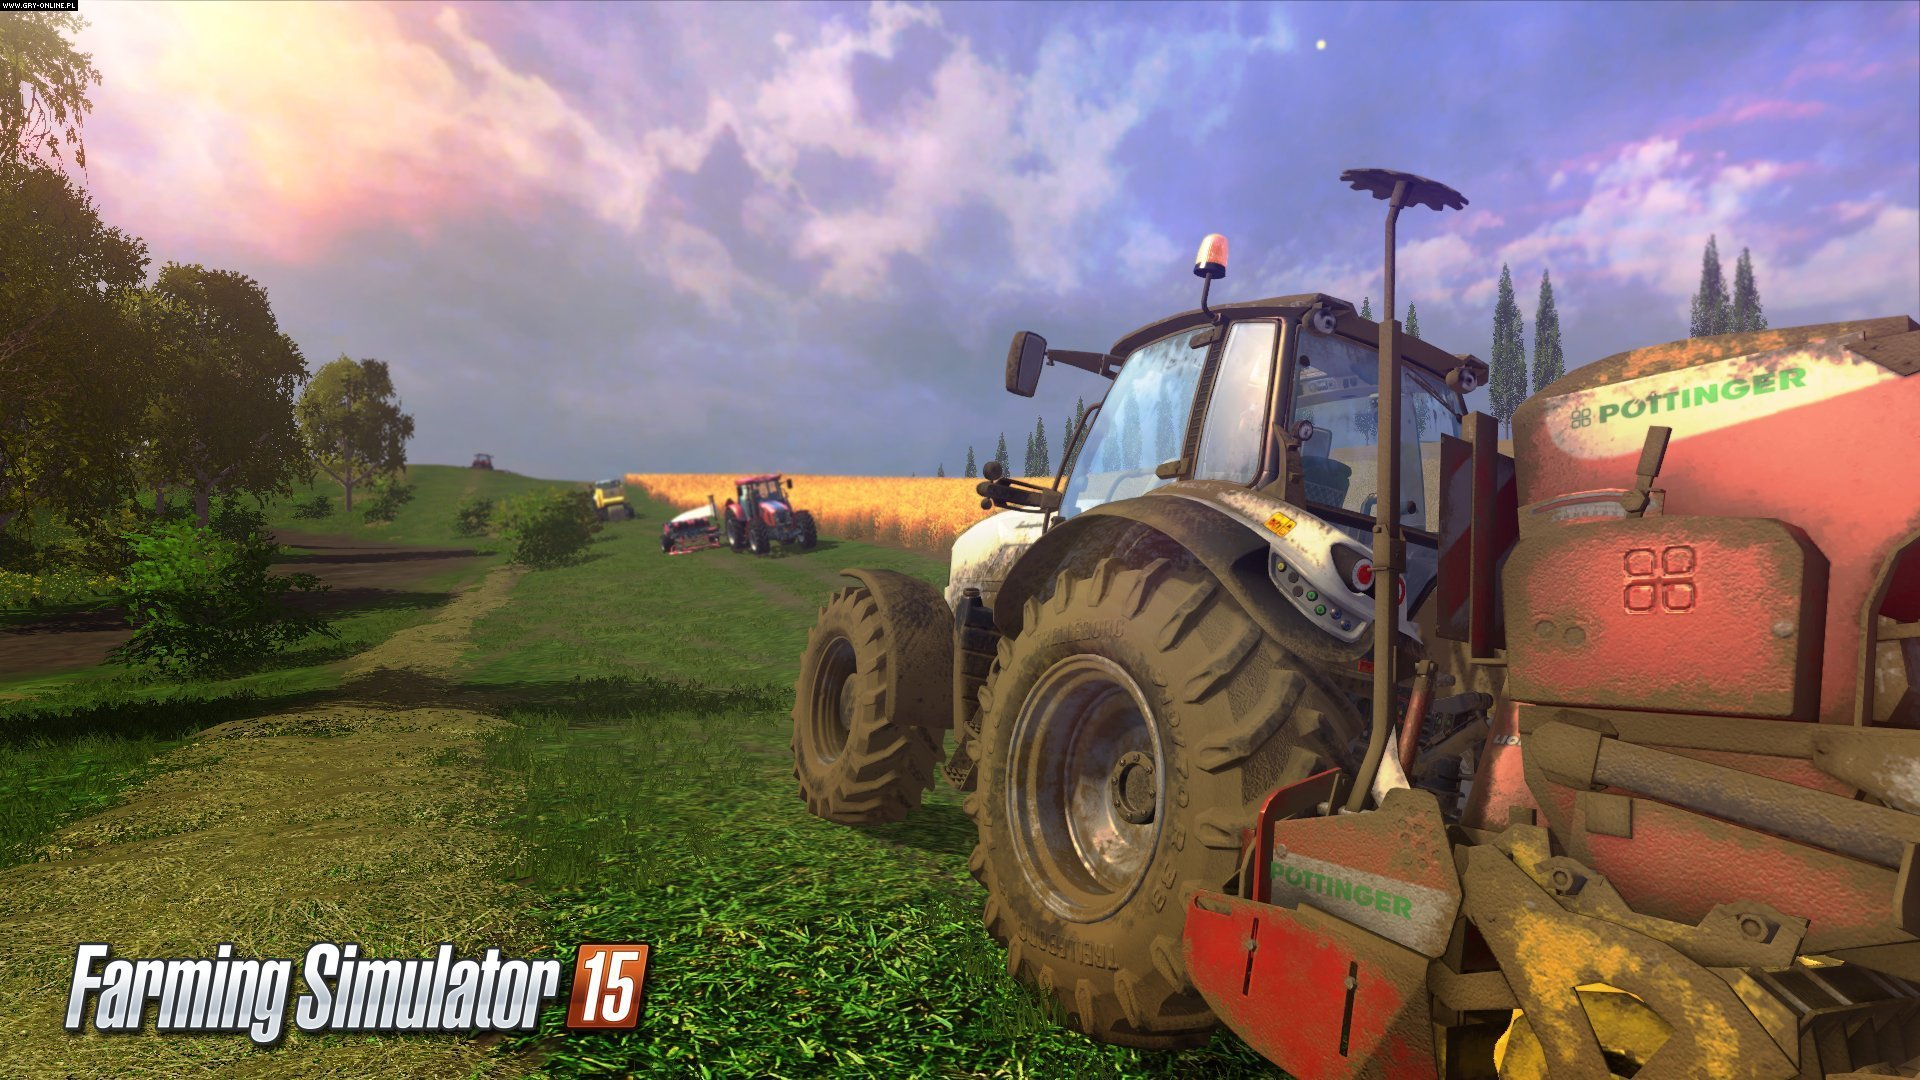 Farming Simulator 15 PC, X360, PS3, XONE, PS4 Games Image 4/14, GIANTS Software, Focus Home Interactive